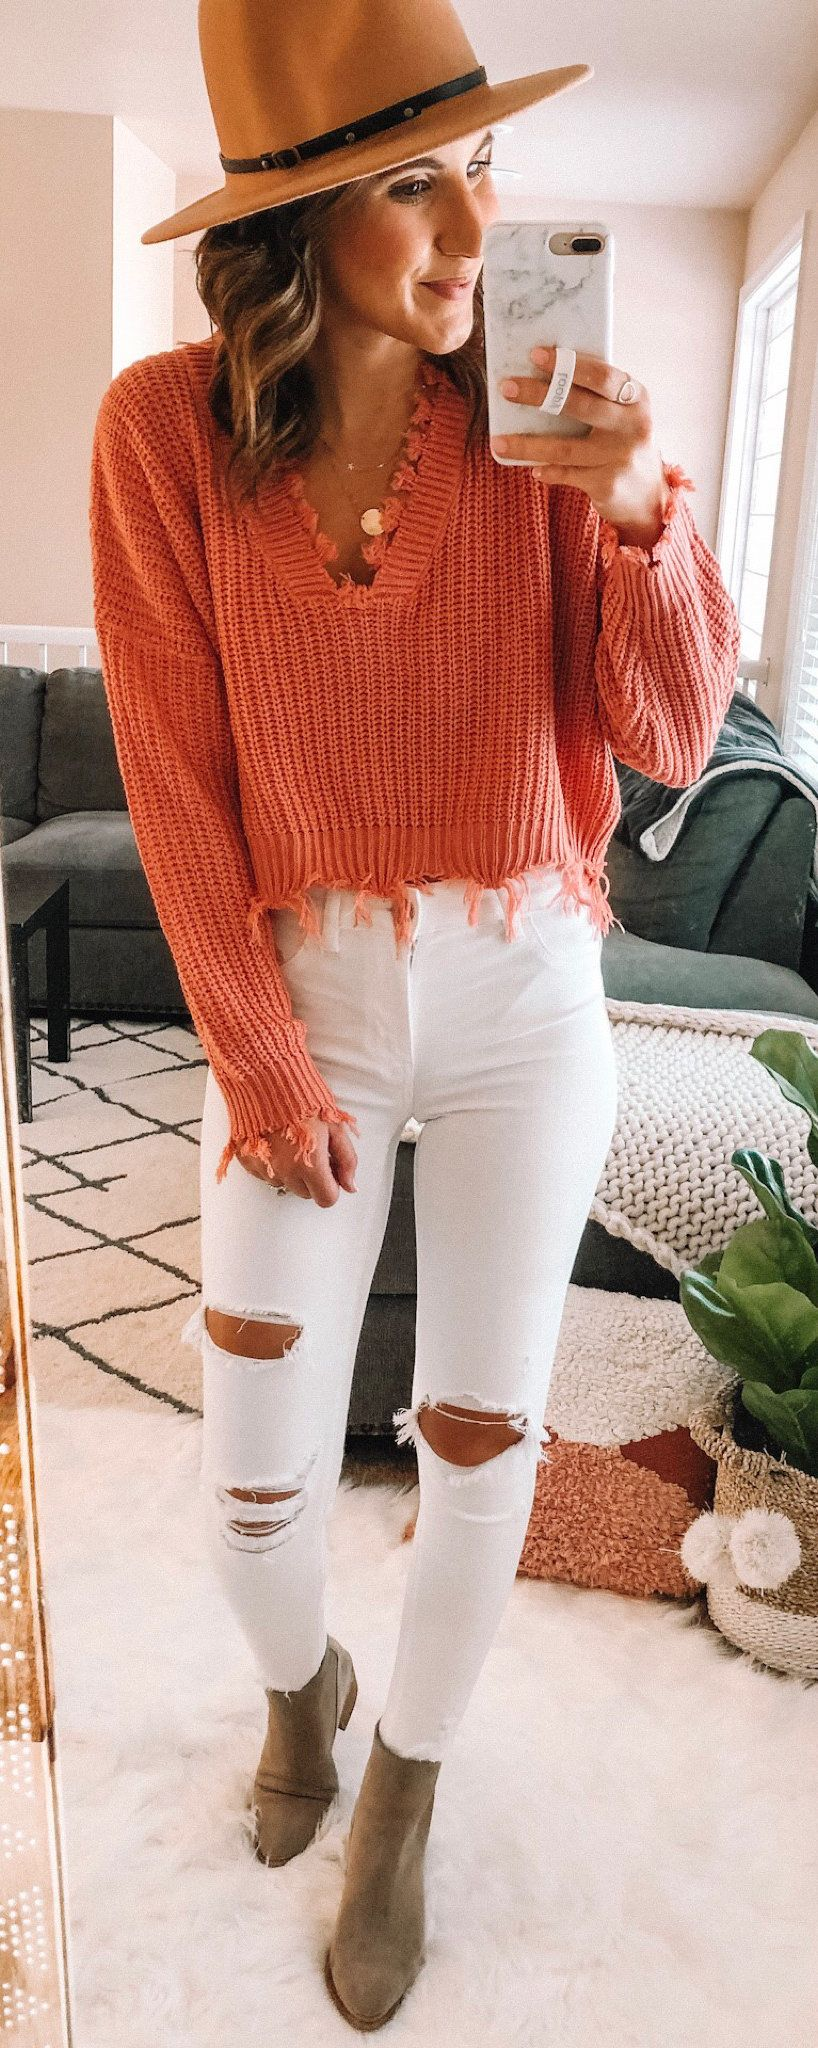 white distressed skinny jeans #spring #outfits